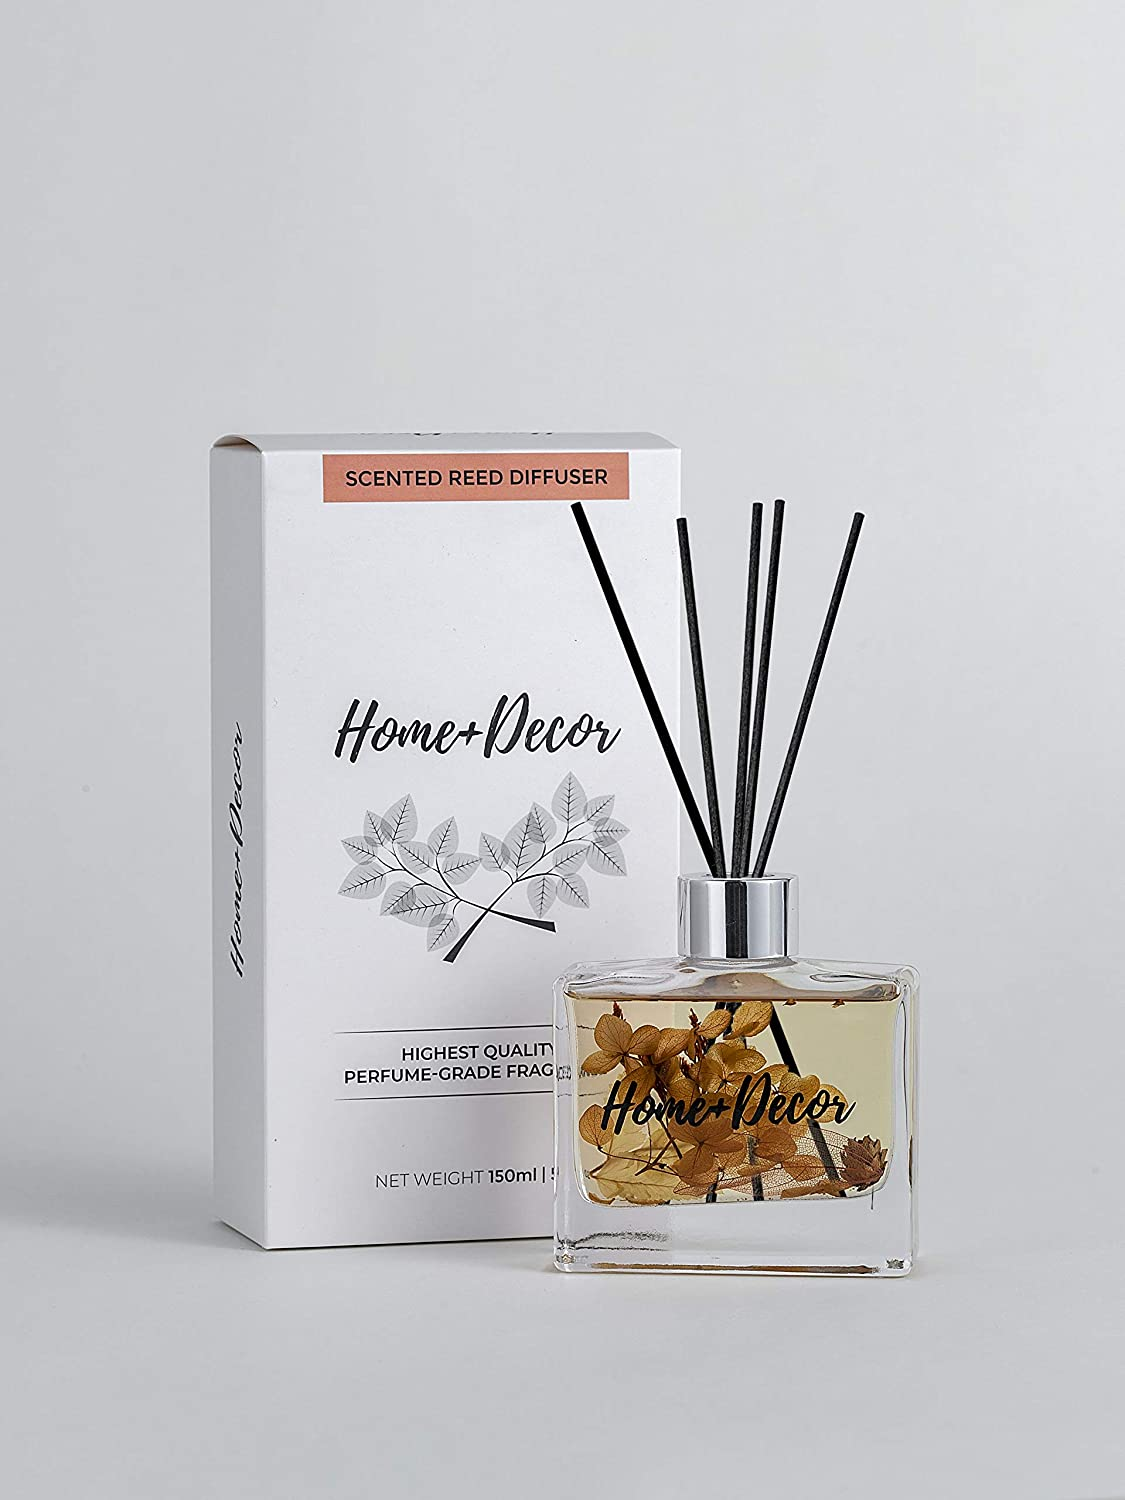 HOME + DECOR BY HJEMM Reed Diffuser Fragrance Set with Sticks - Proprietary Blend of Brazilian Orange, Bergamot, Spearmint, Eucalyptus, Sage, and hints of Cypress Wood - Long-Lasting Safe and Natural